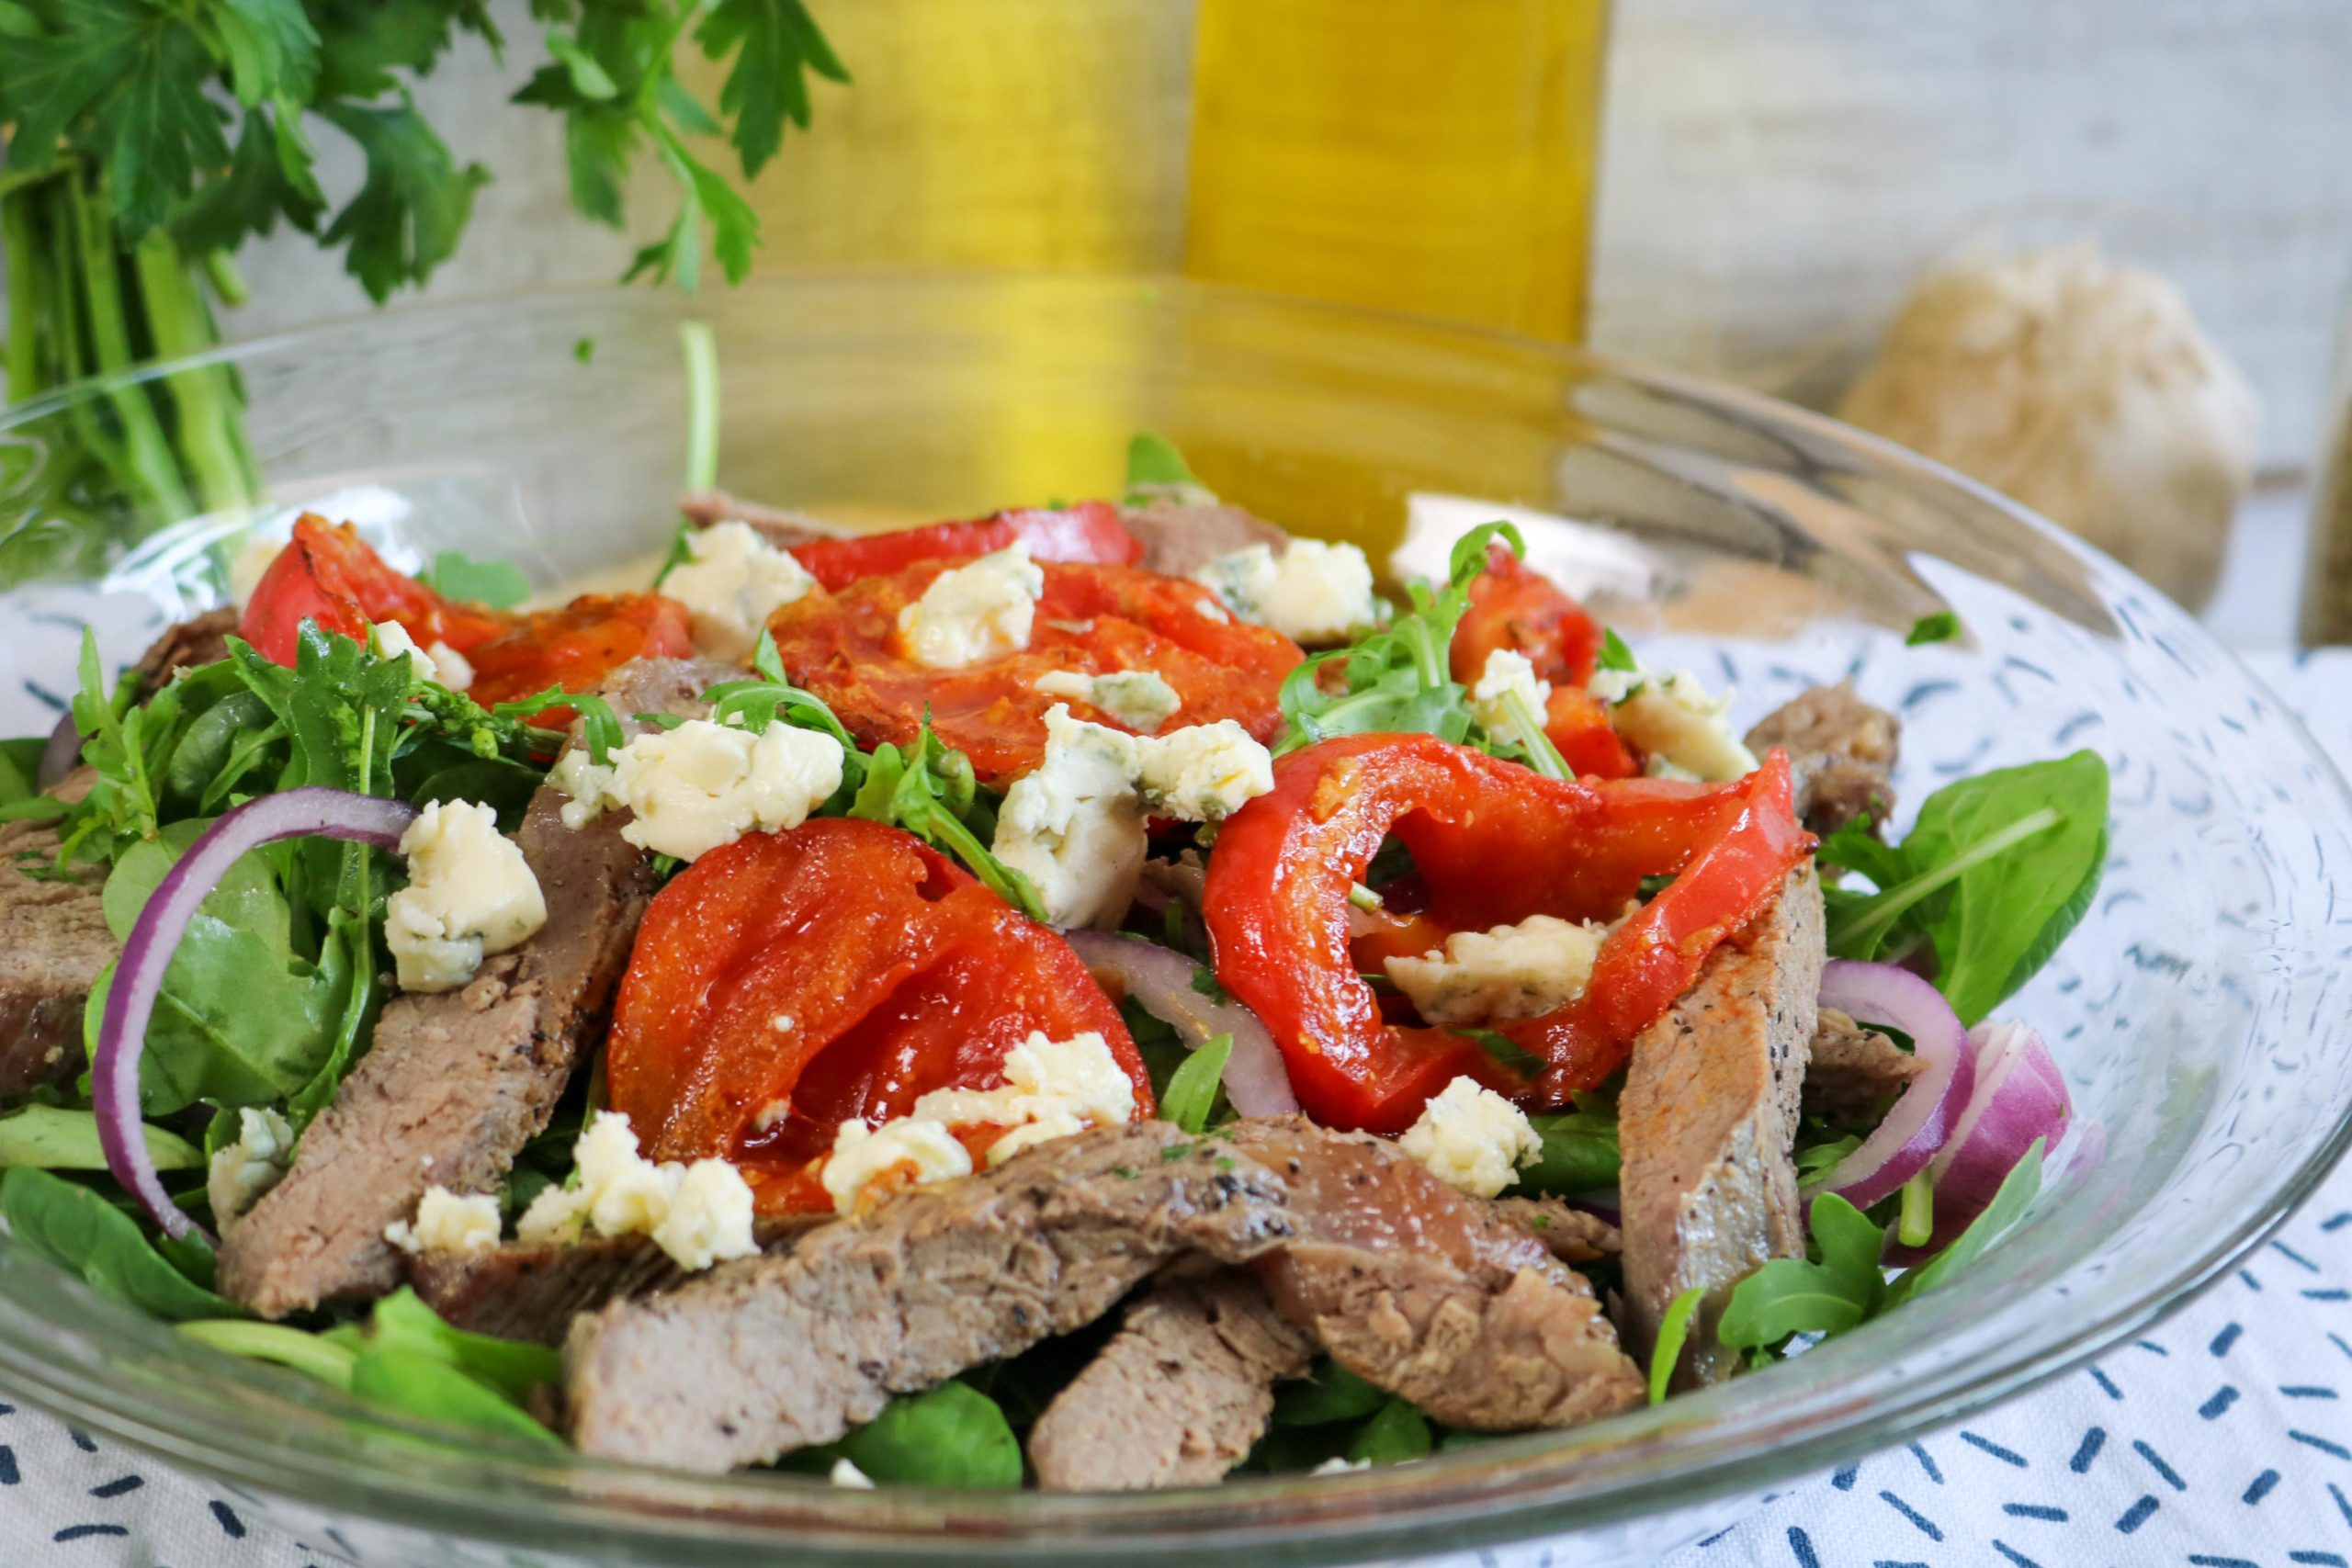 Warm Steak Salad with Seared Tomato